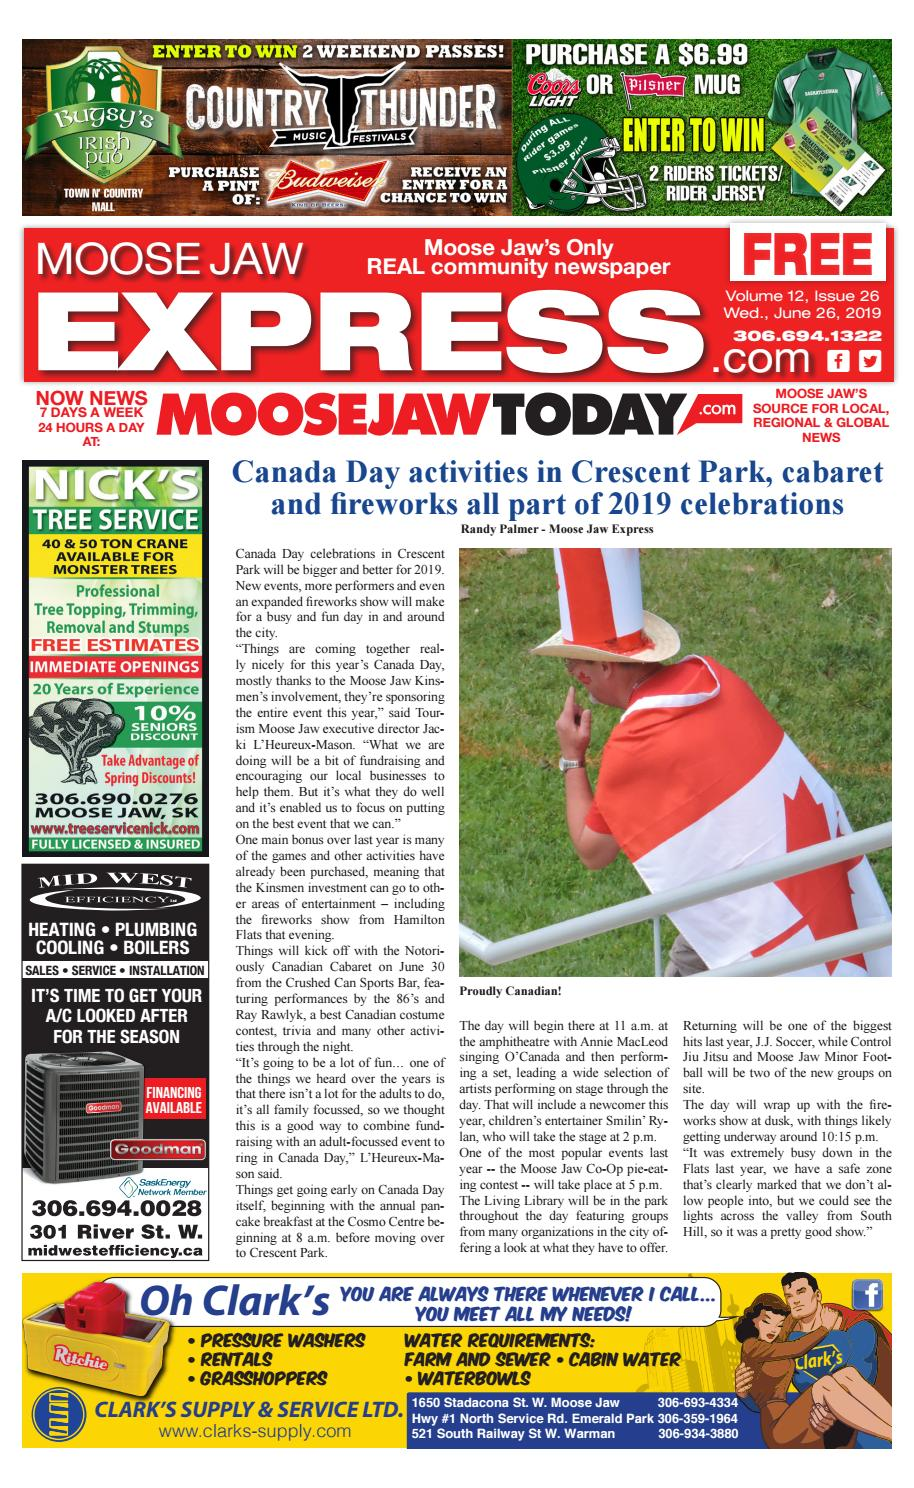 Moose Jaw Express June 26th, 2019 by Moose Jaw Express - issuu